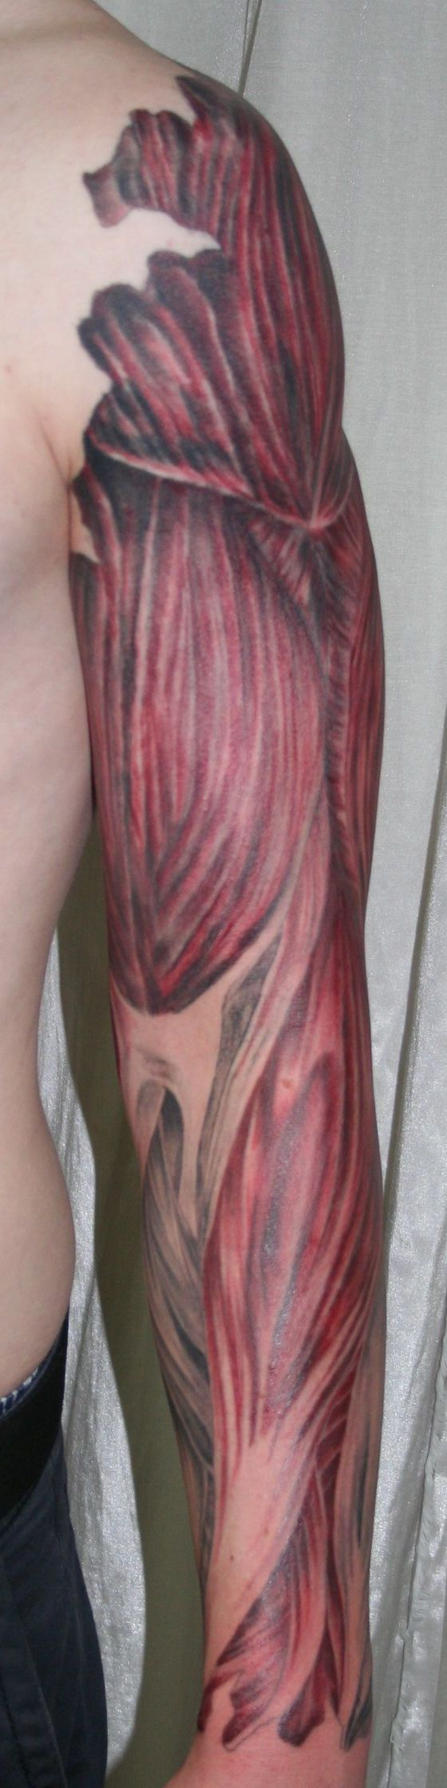 arm with muscle tiss Tattoo